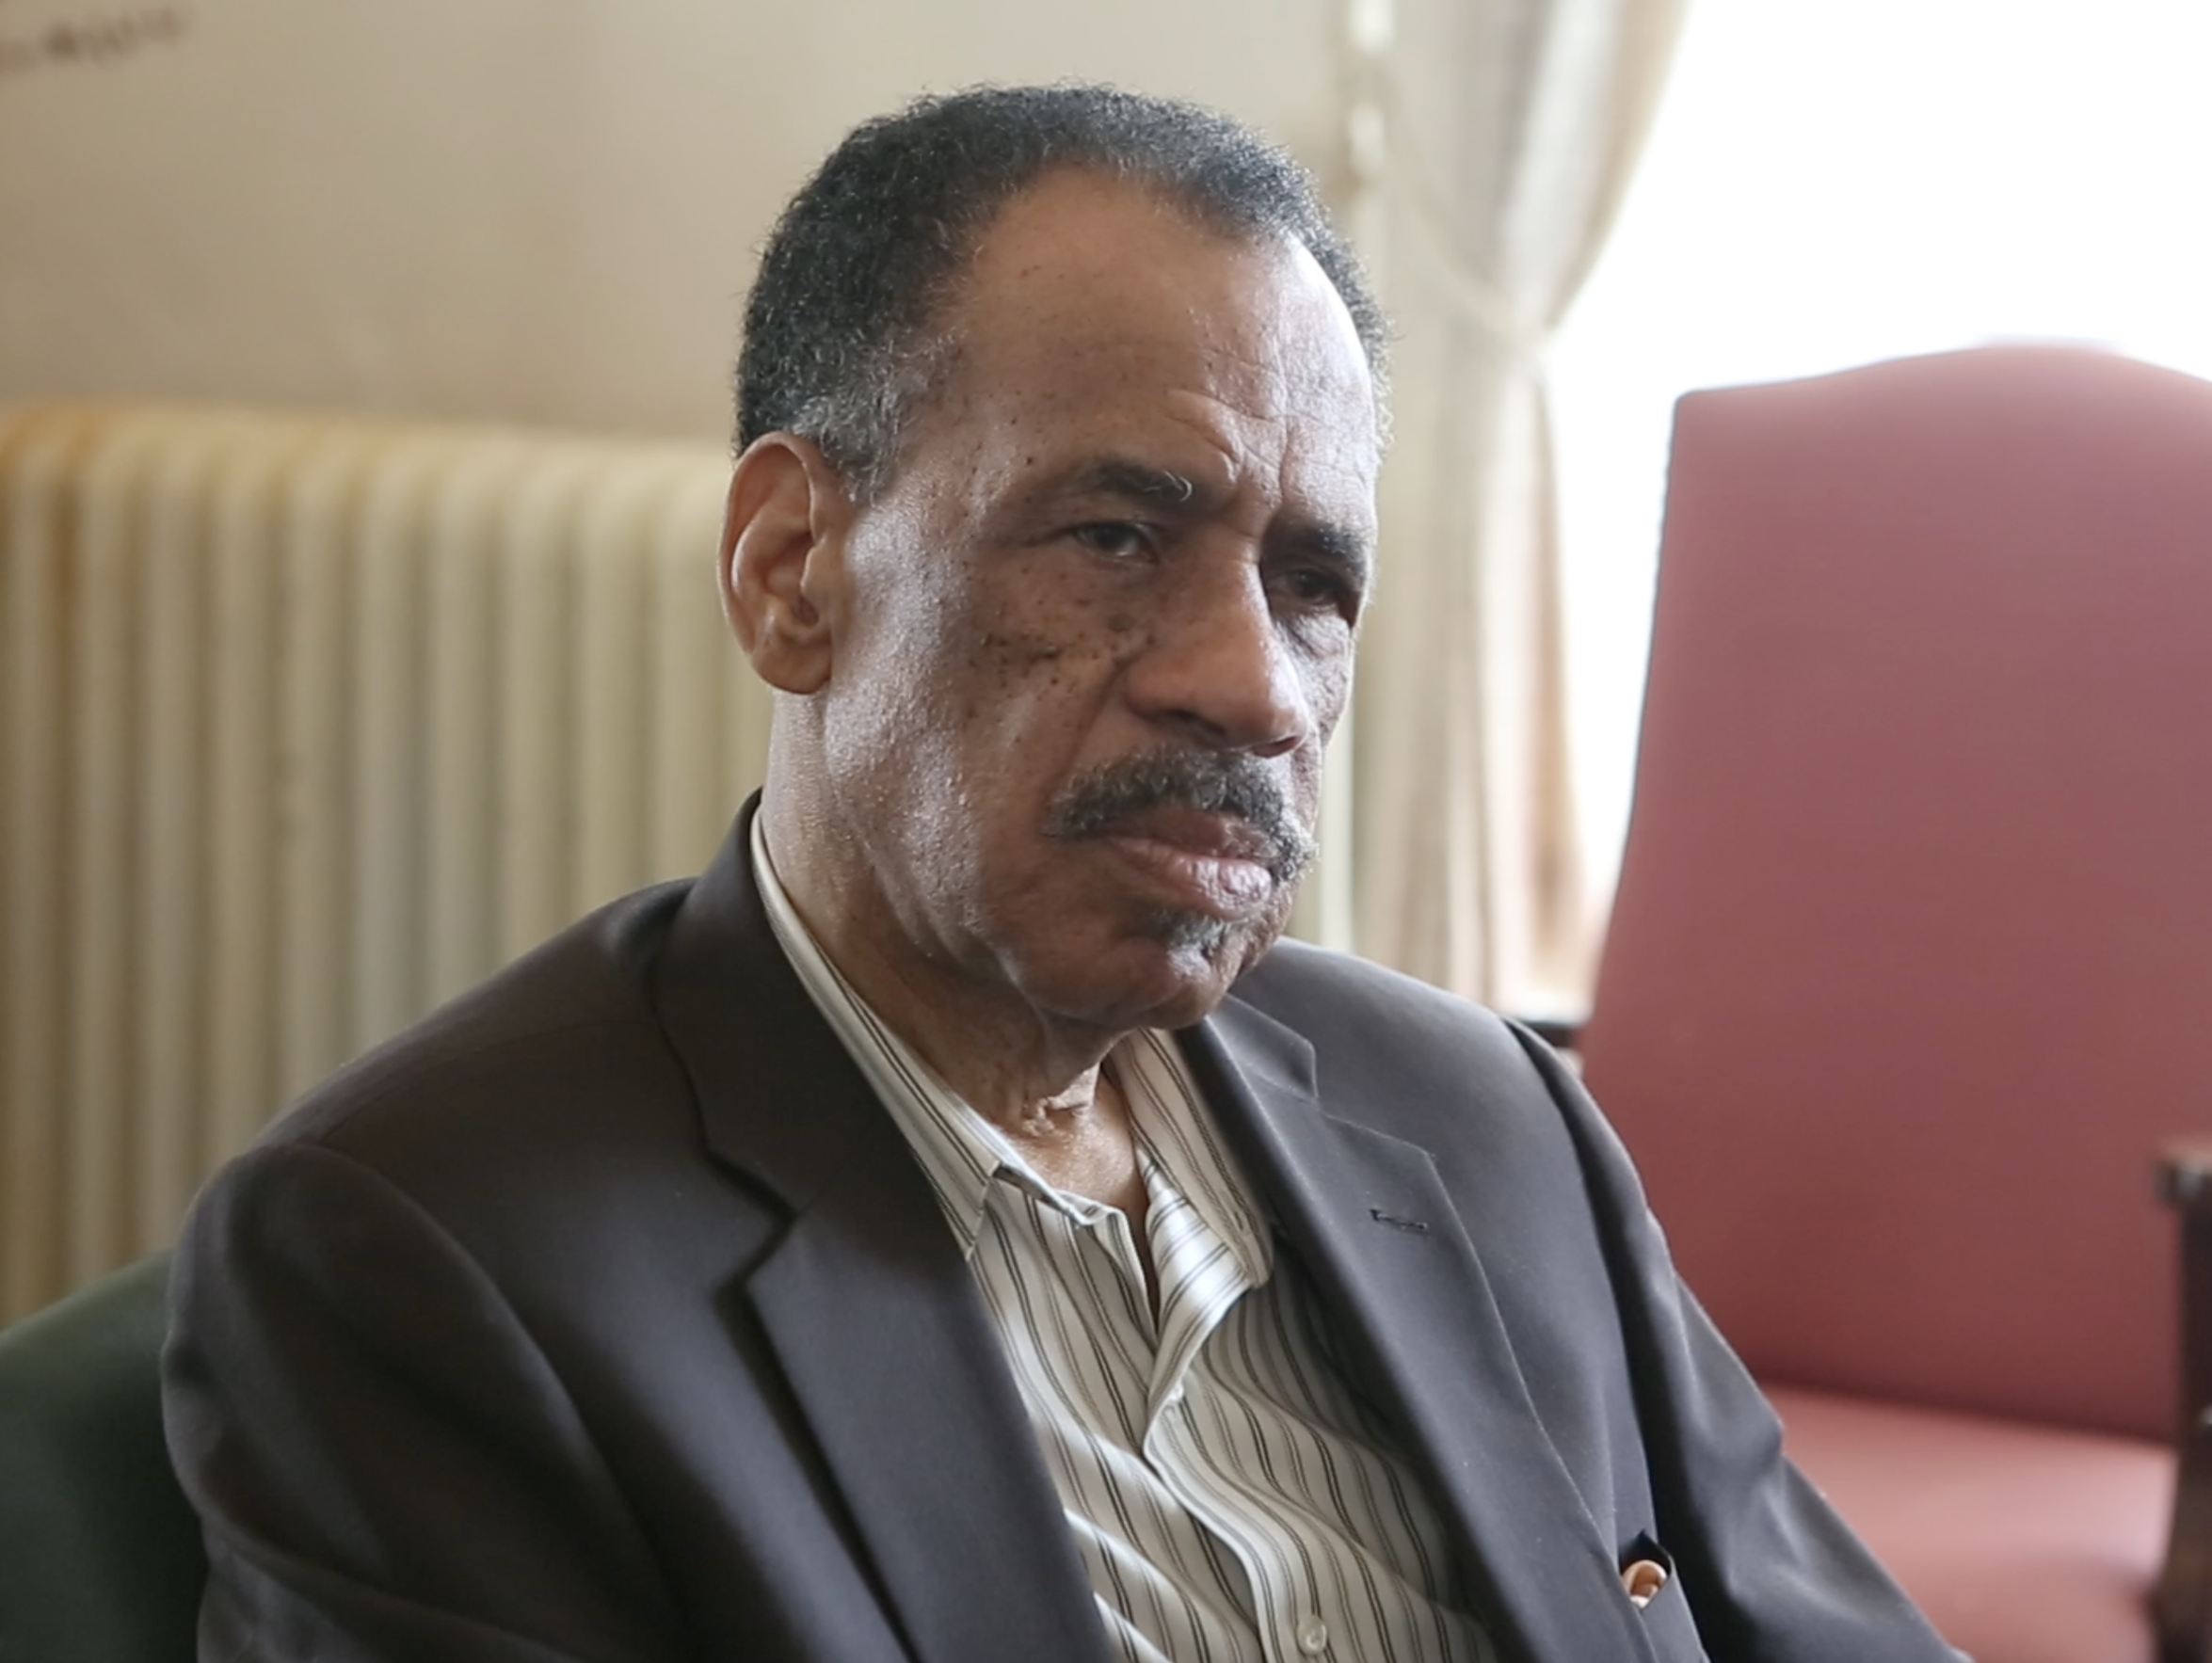 Nestor Stroude, Retha Welch's pastor, still keeps a Bible given to him in her honor after her April 1987 stabbing death. Welch ministered inmates in Ohio and Kentucky prisons. The Enquirer/Amanda Rossmann